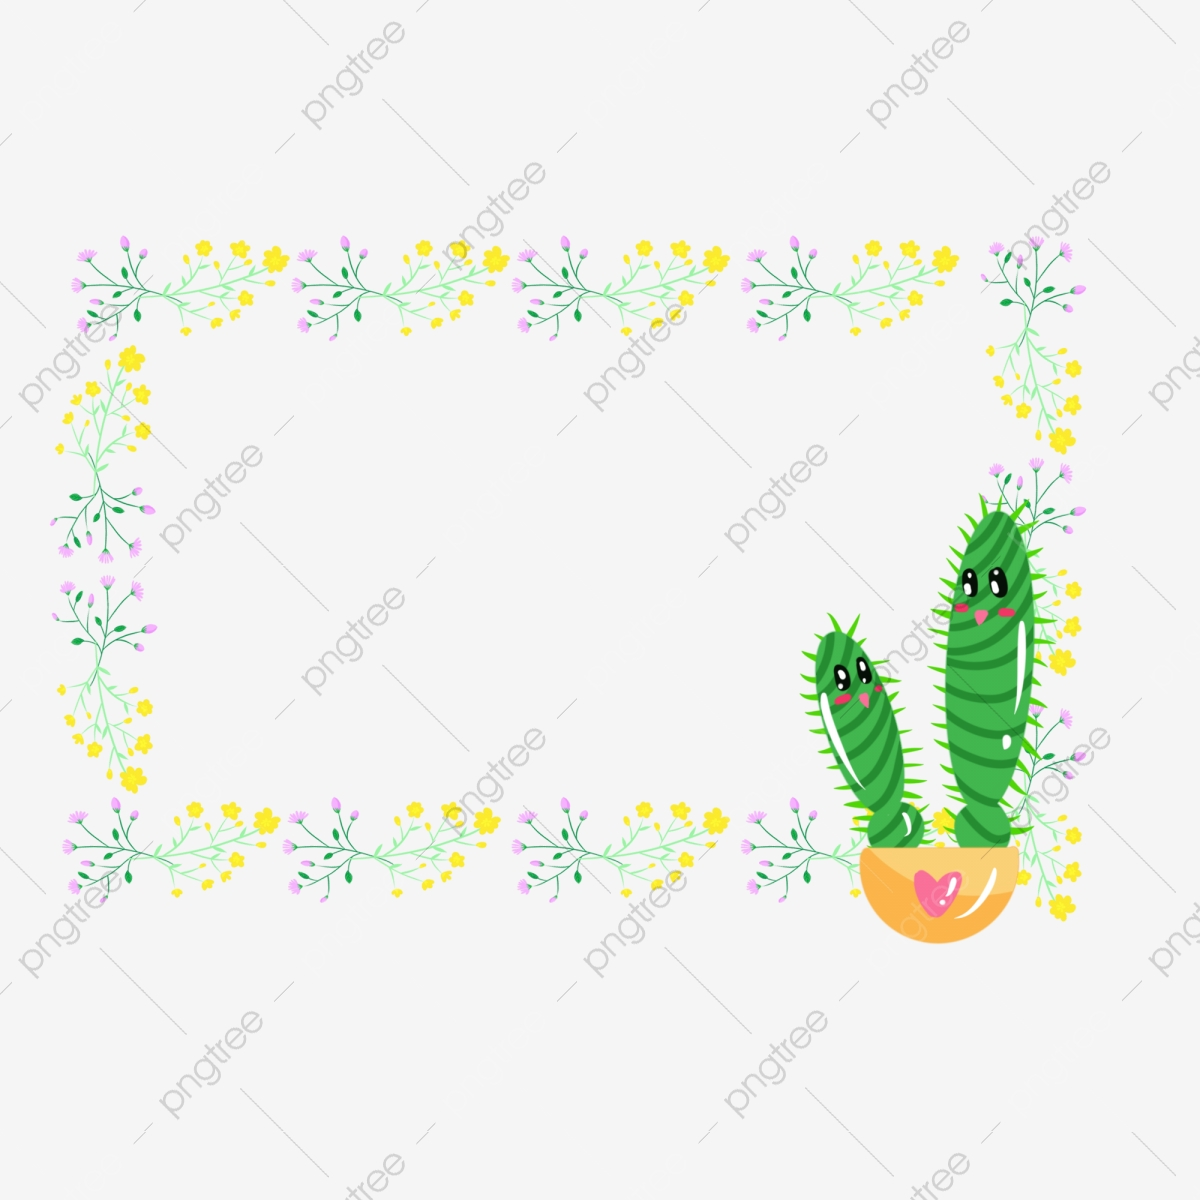 Cactus Border Png - Hand Painted Small Fresh Protection Plant Flowers And Plants ...